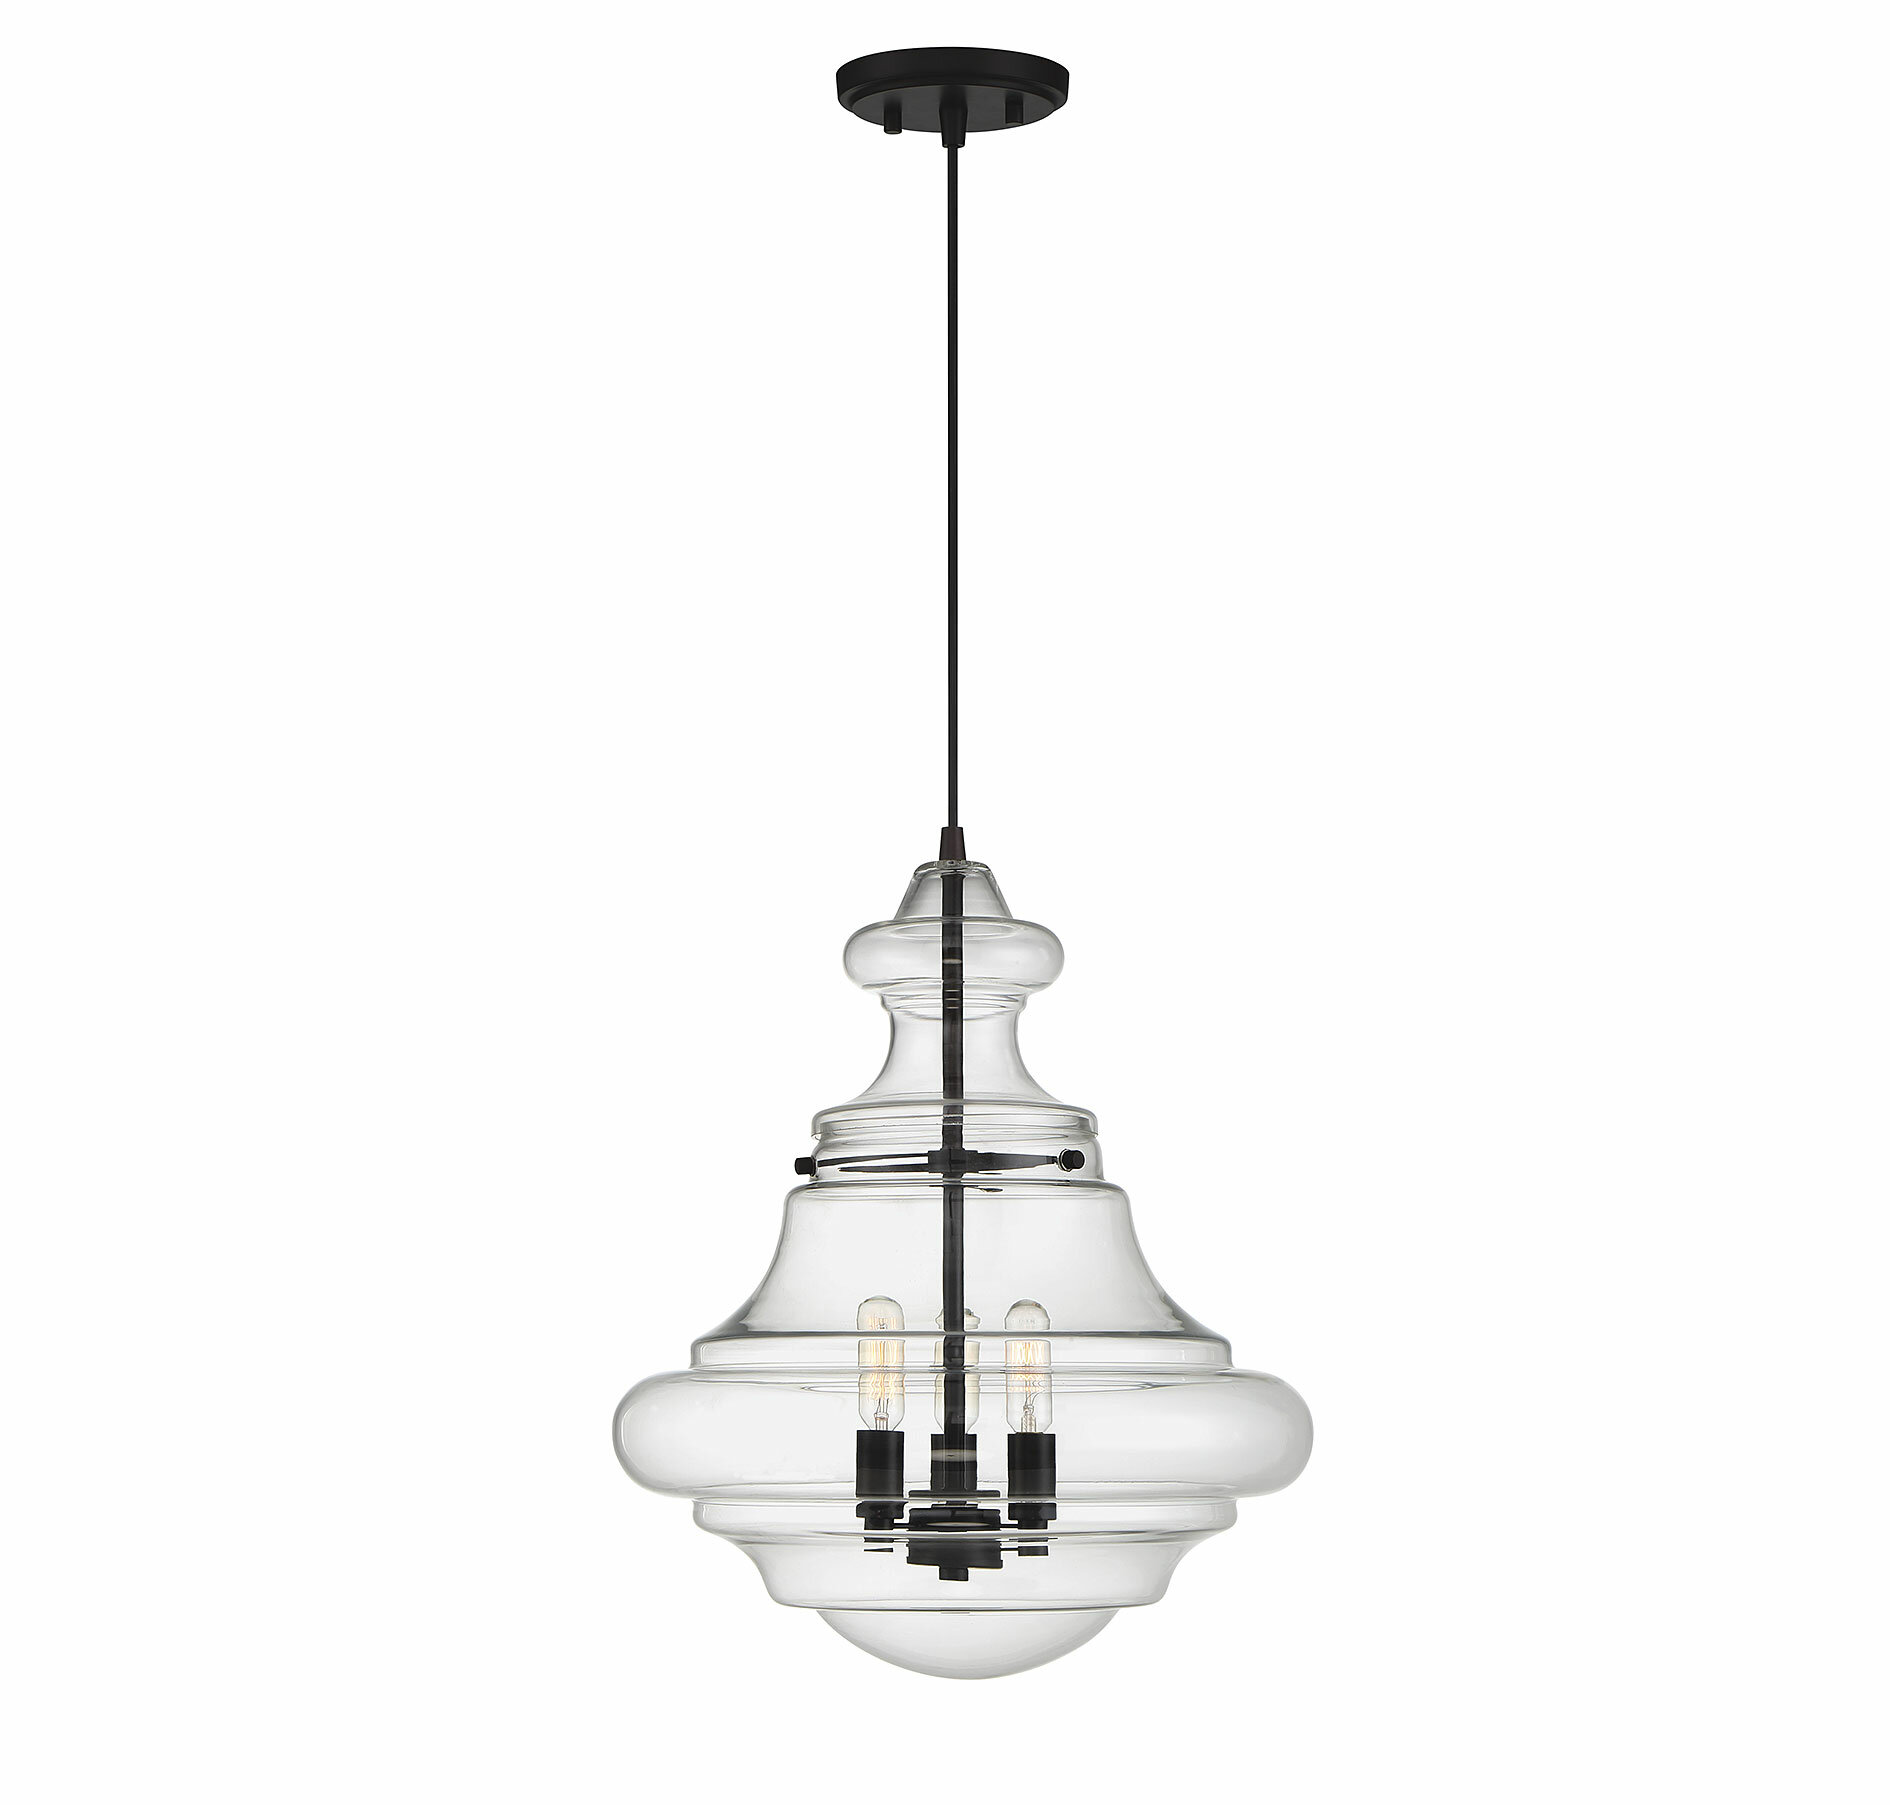 collectie pendelleuchte opal glass von lights lumi dreirohr d opalglas lamp co schoolhouse three with mit art rod id image kanneliertem fluted pendant casa